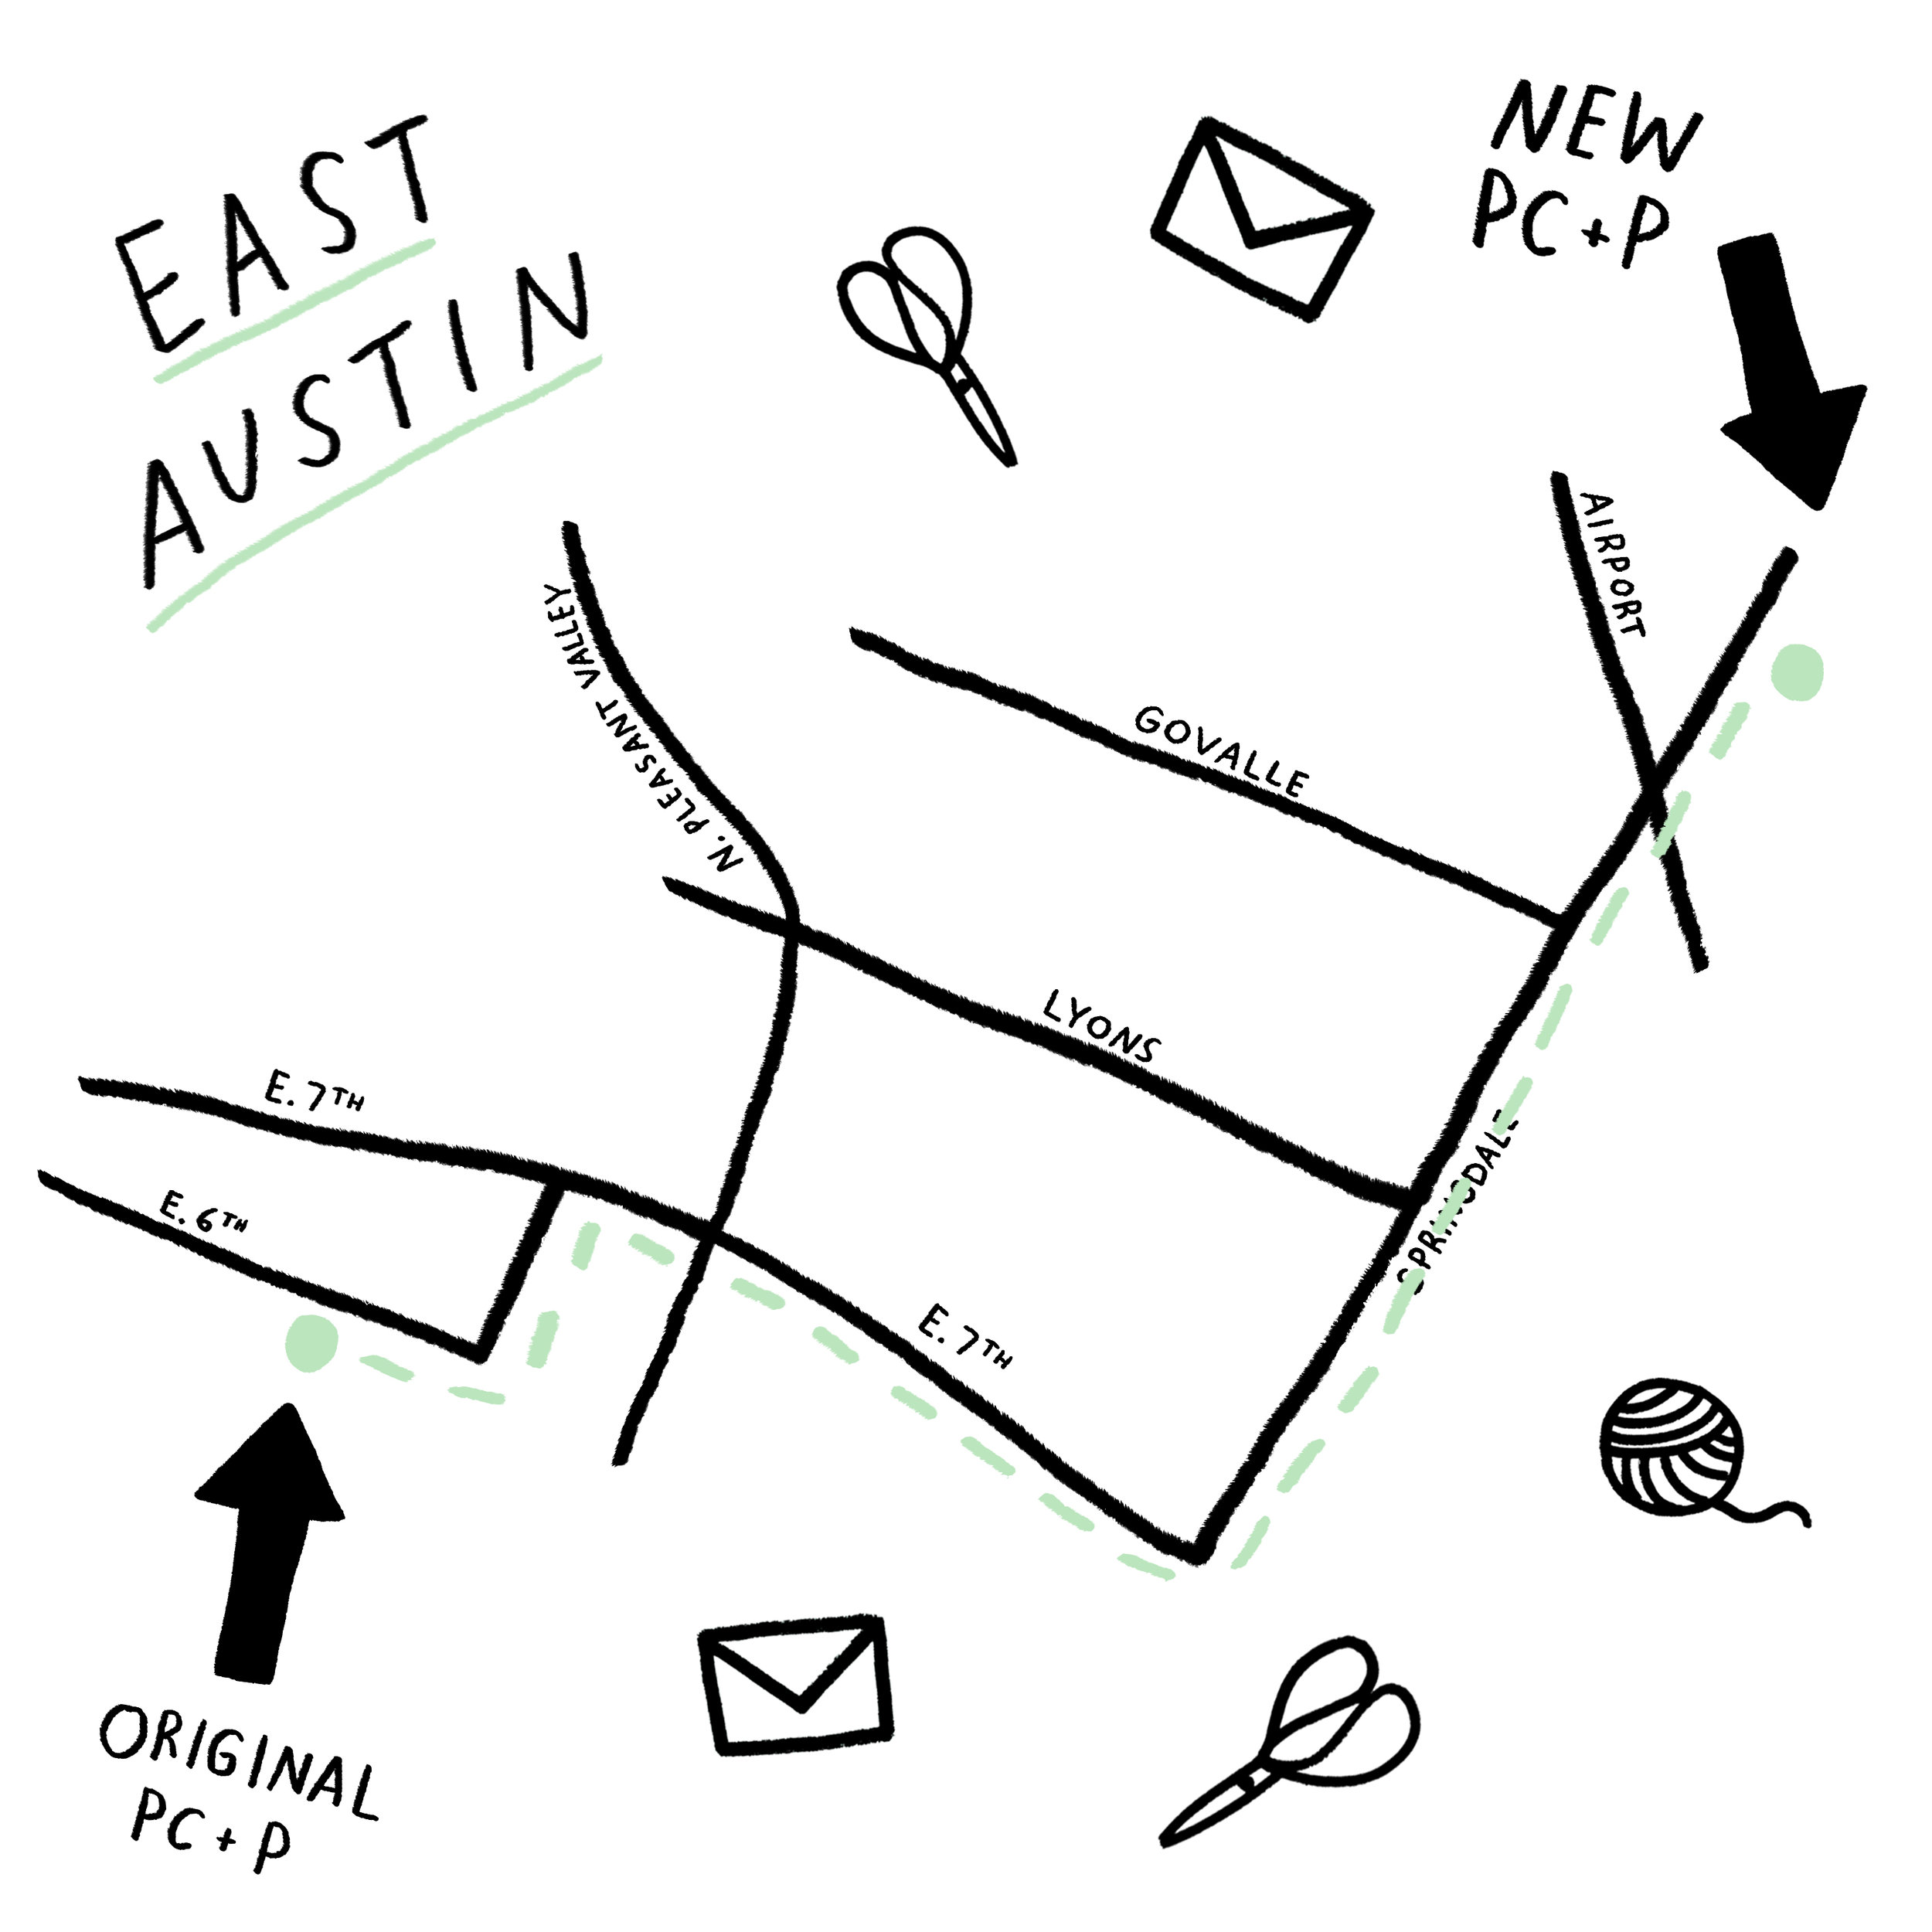 The Paper + Craft Pantry in East Austin.